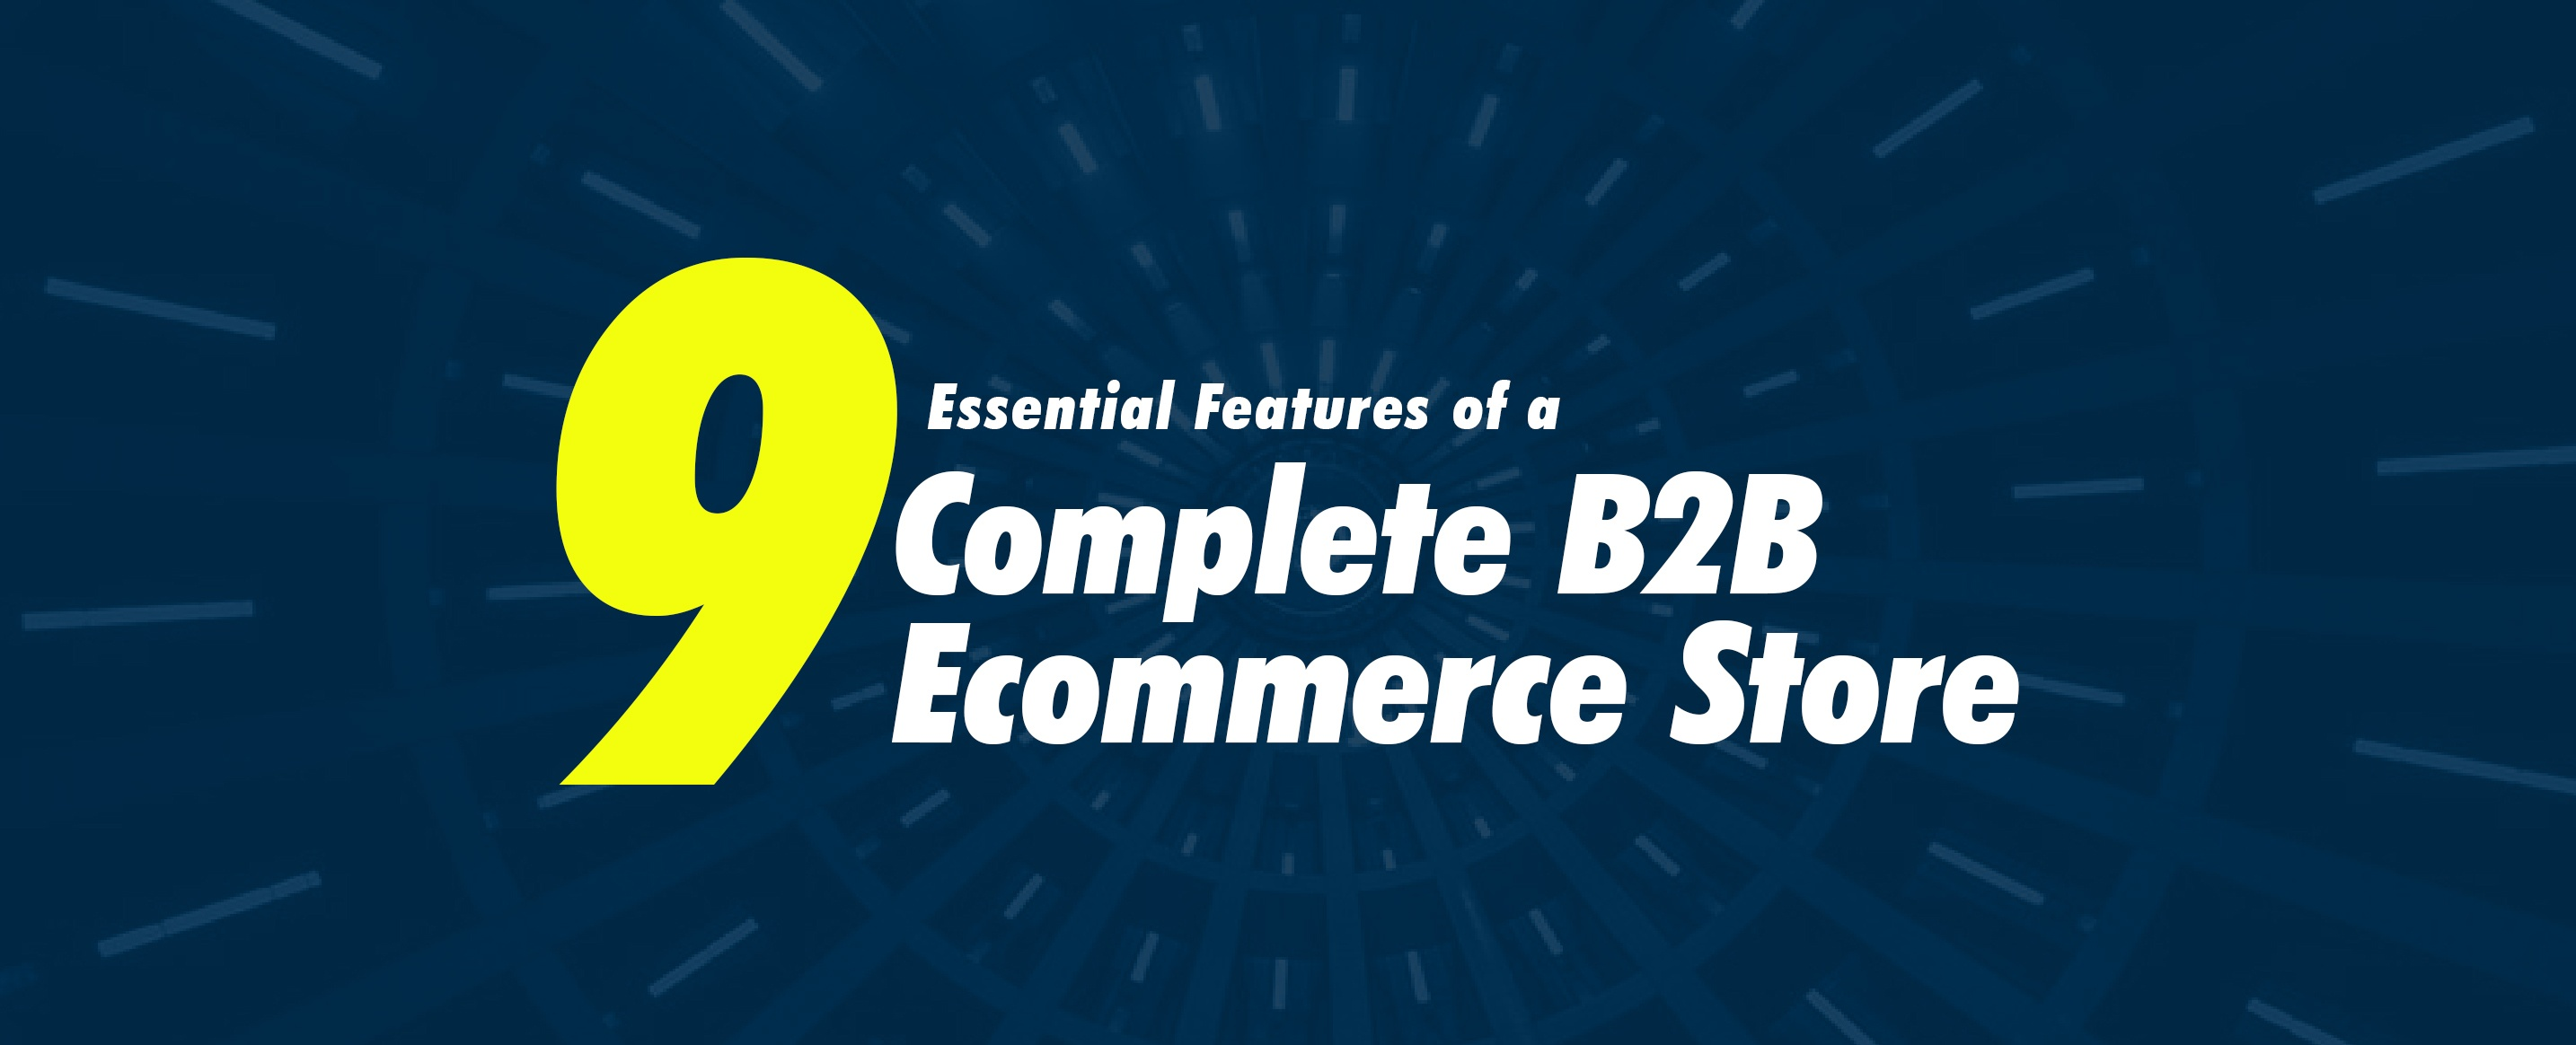 9-Essential-Features-of-a-Complete-B2B-Ecommerce-Store